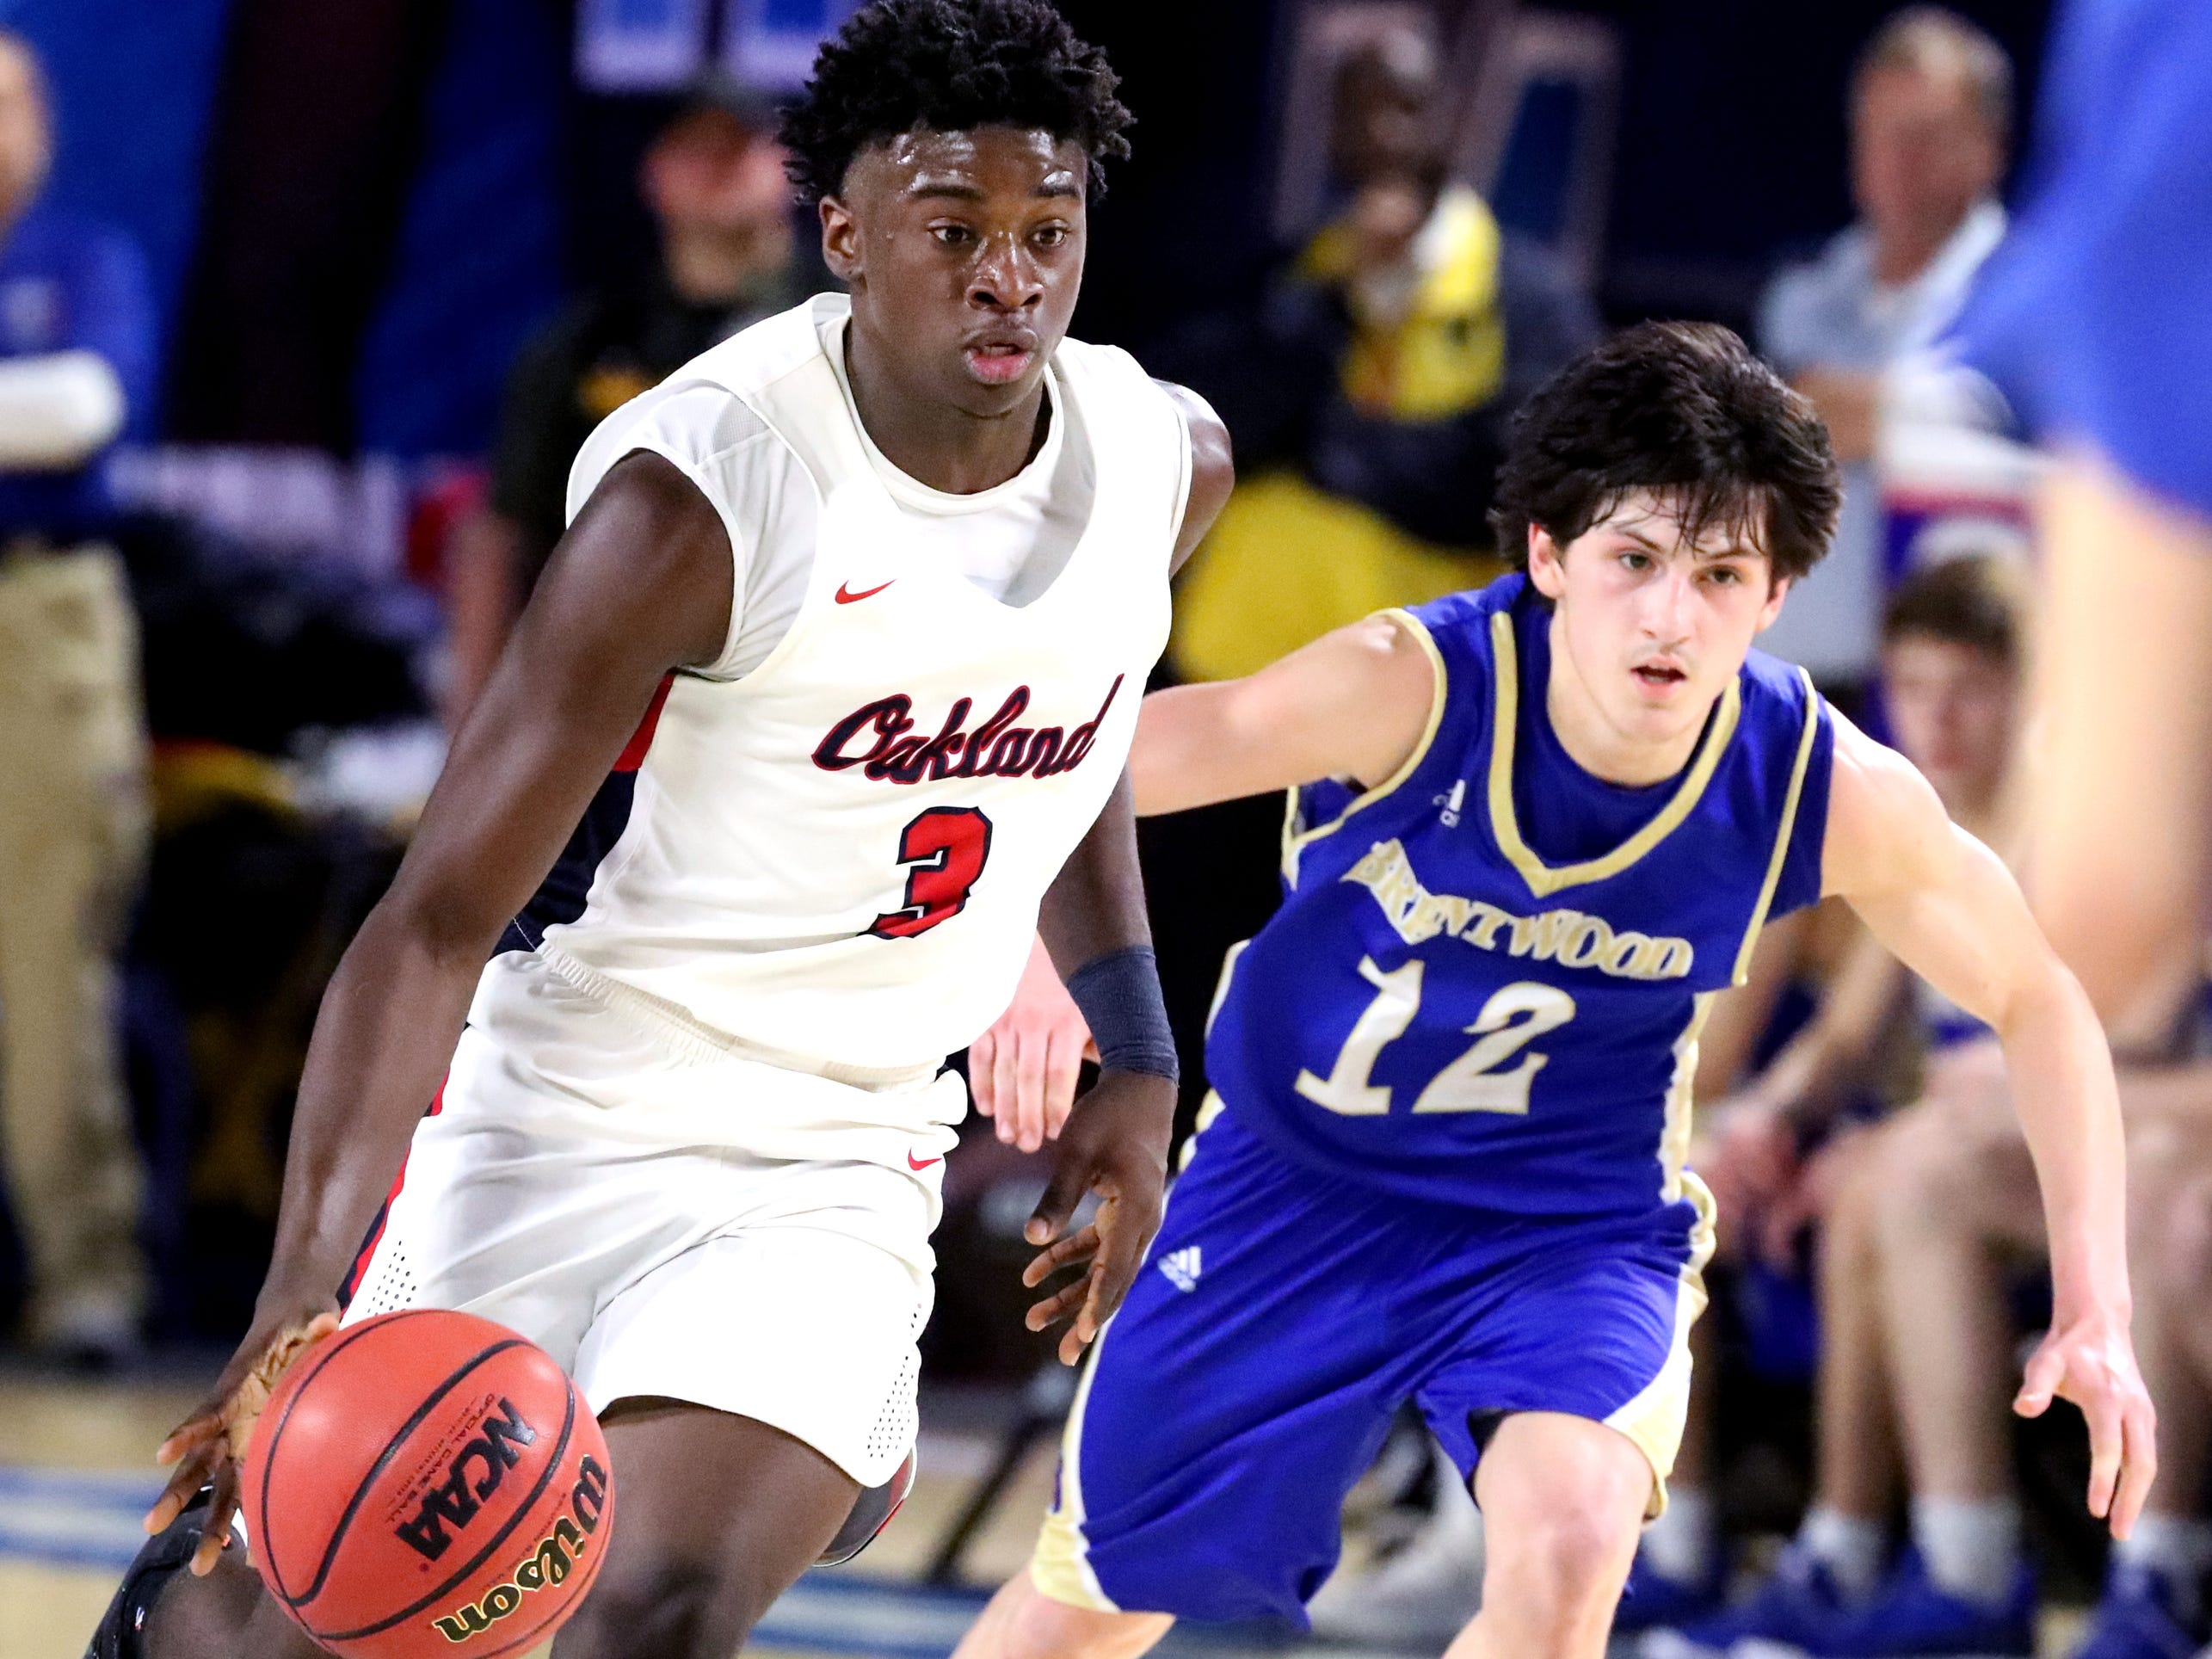 Oakland's Dearre McDonald (3) brings the ball up court as Brentwood's Preston Moore (12) guards him during the quarterfinal round of the TSSAA Class AAA Boys State Tournament, on Thursday, March 14, 2019, at Murphy Center in Murfreesboro, Tenn.